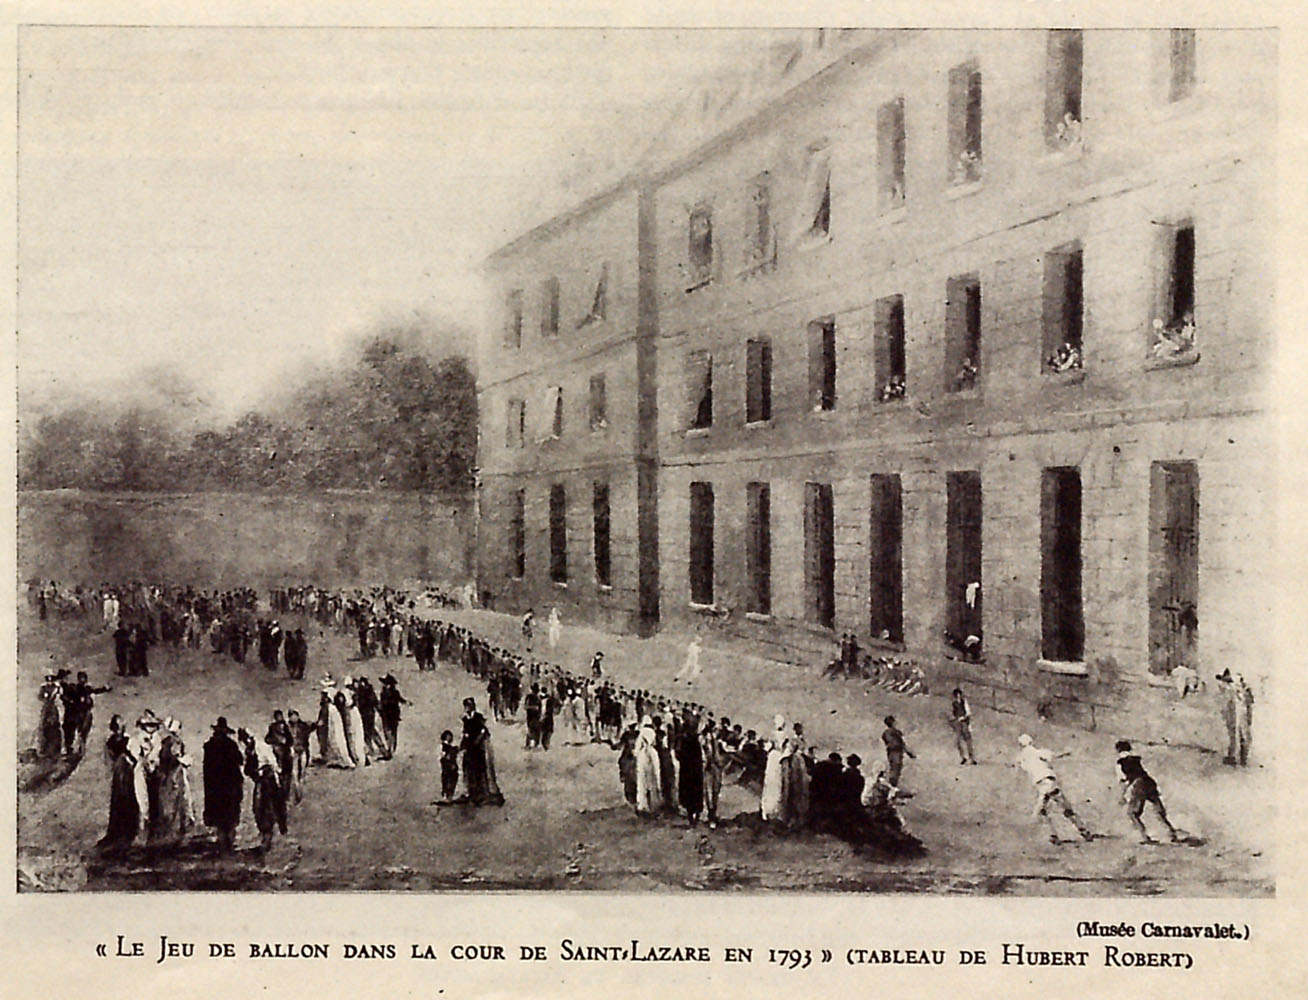 A Baloon game in the courtyard of Saint-Lazare in 1793